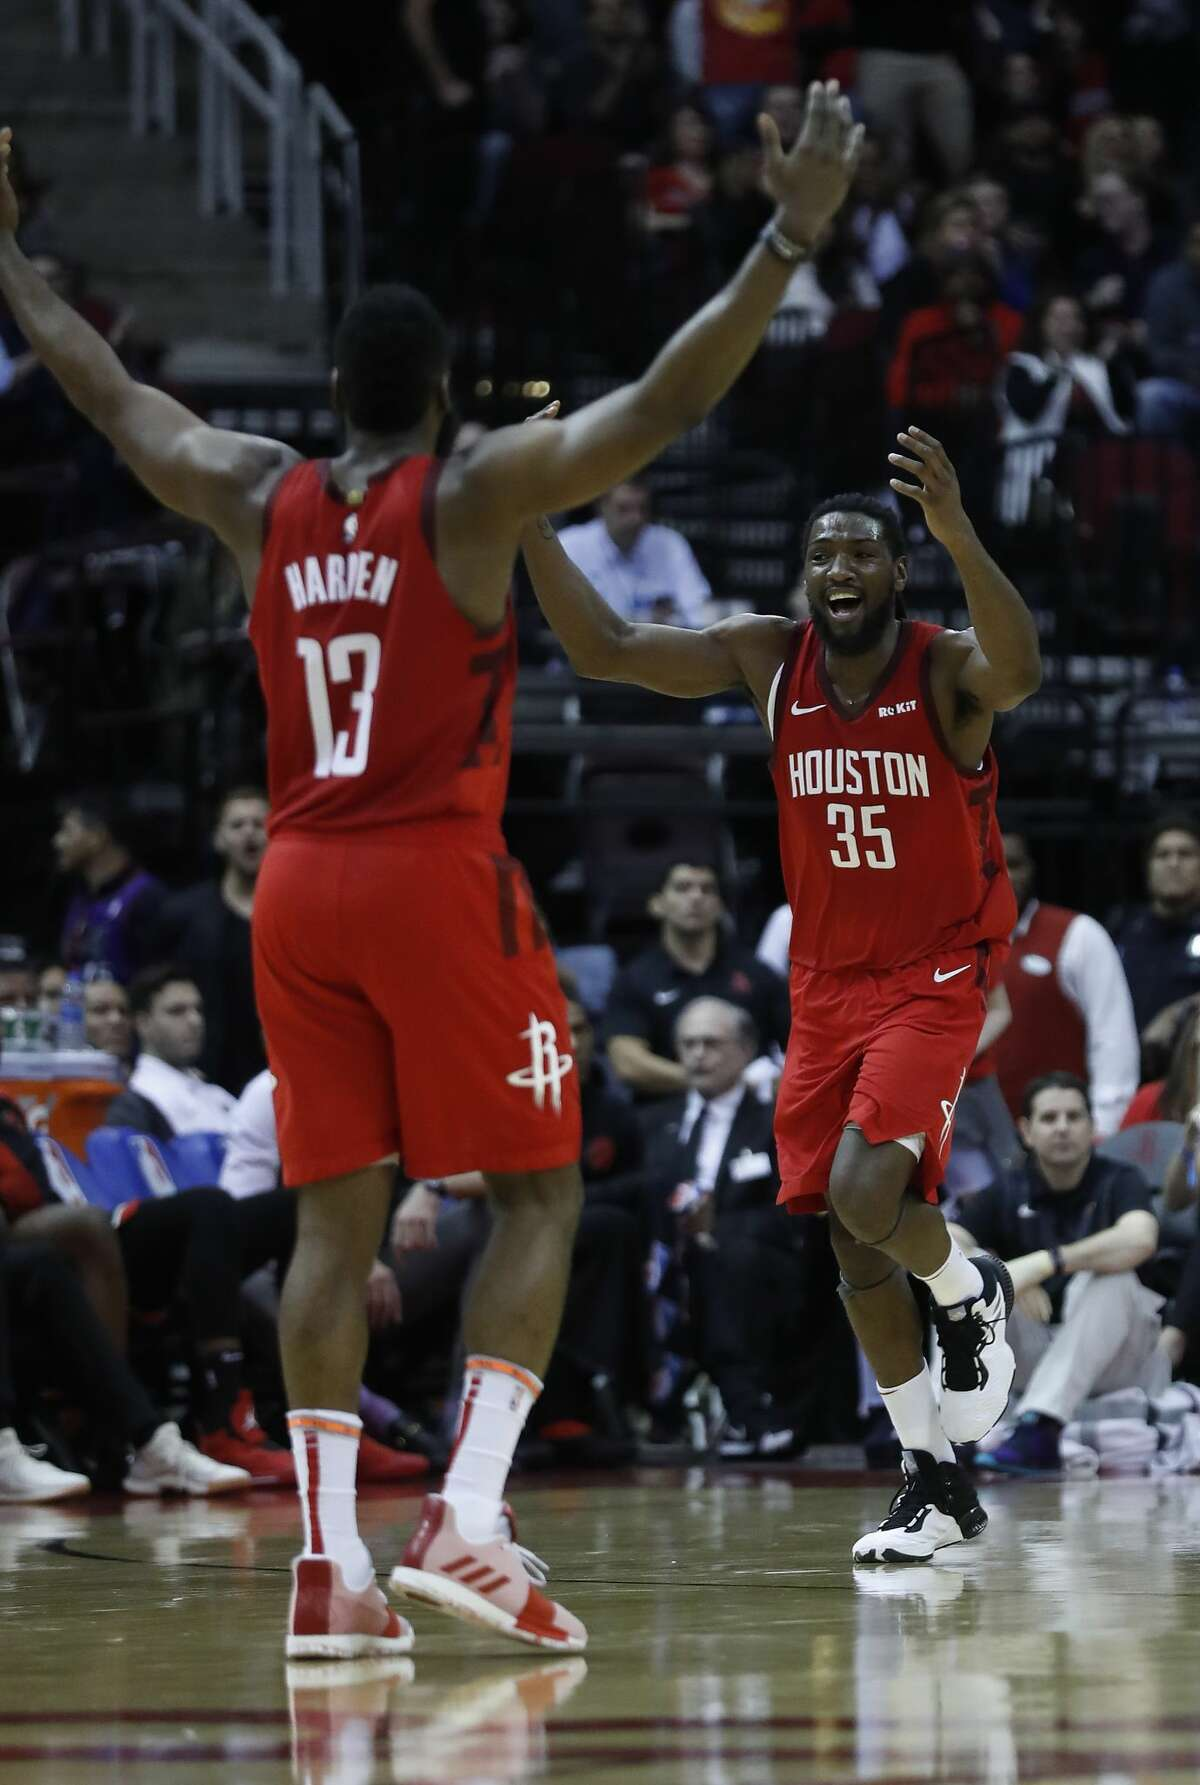 Houston Rockets forward Kenneth Faried (35) celebrates a basket scored against Toronto Raptors with guard James Harden (13) during the second half of an NBA basketball game at Toyota Center, Friday, Jan. 25, 2019, in Houston.